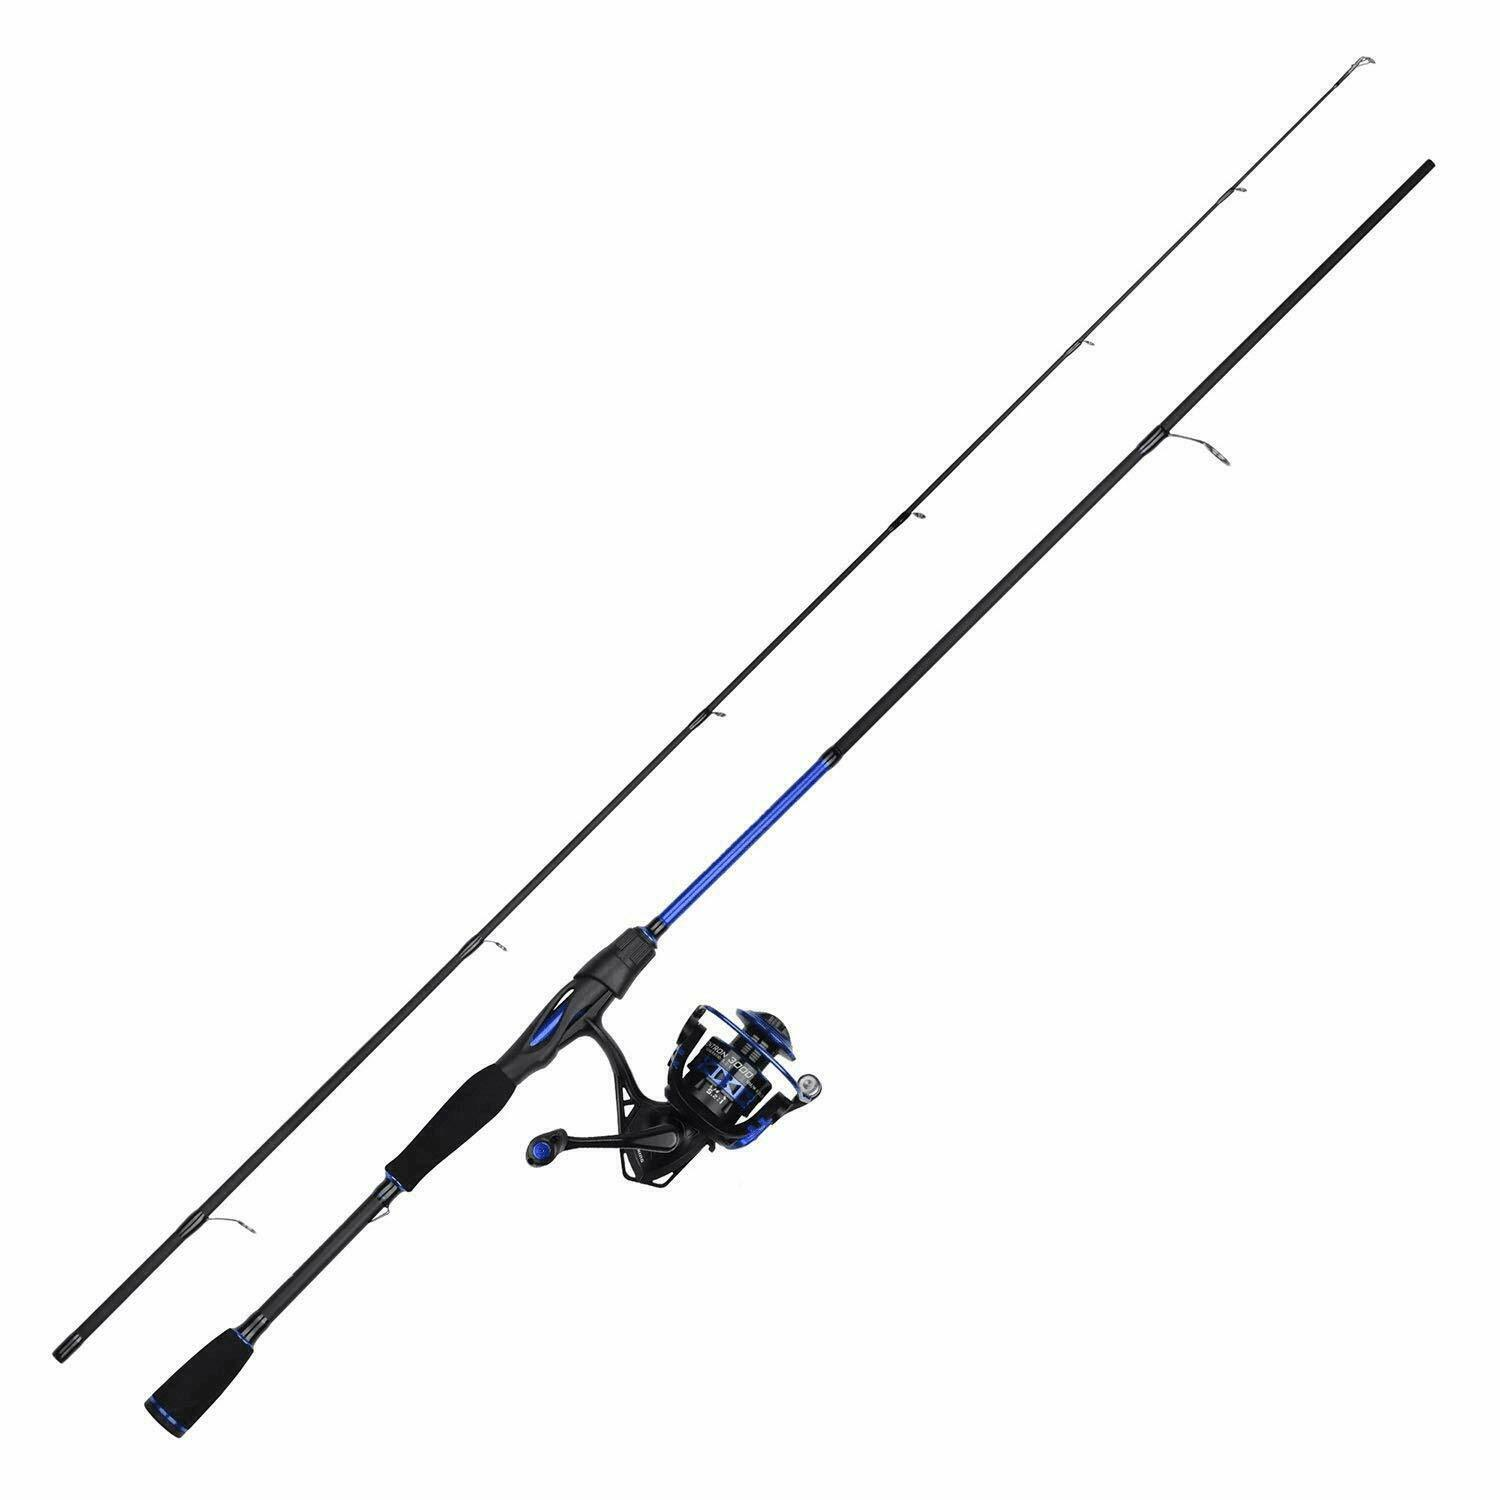 KastKing Centron Combos Centron Spinning Reel  and Rod Fishing Combo - 2PCS Rod  free shipping on all orders